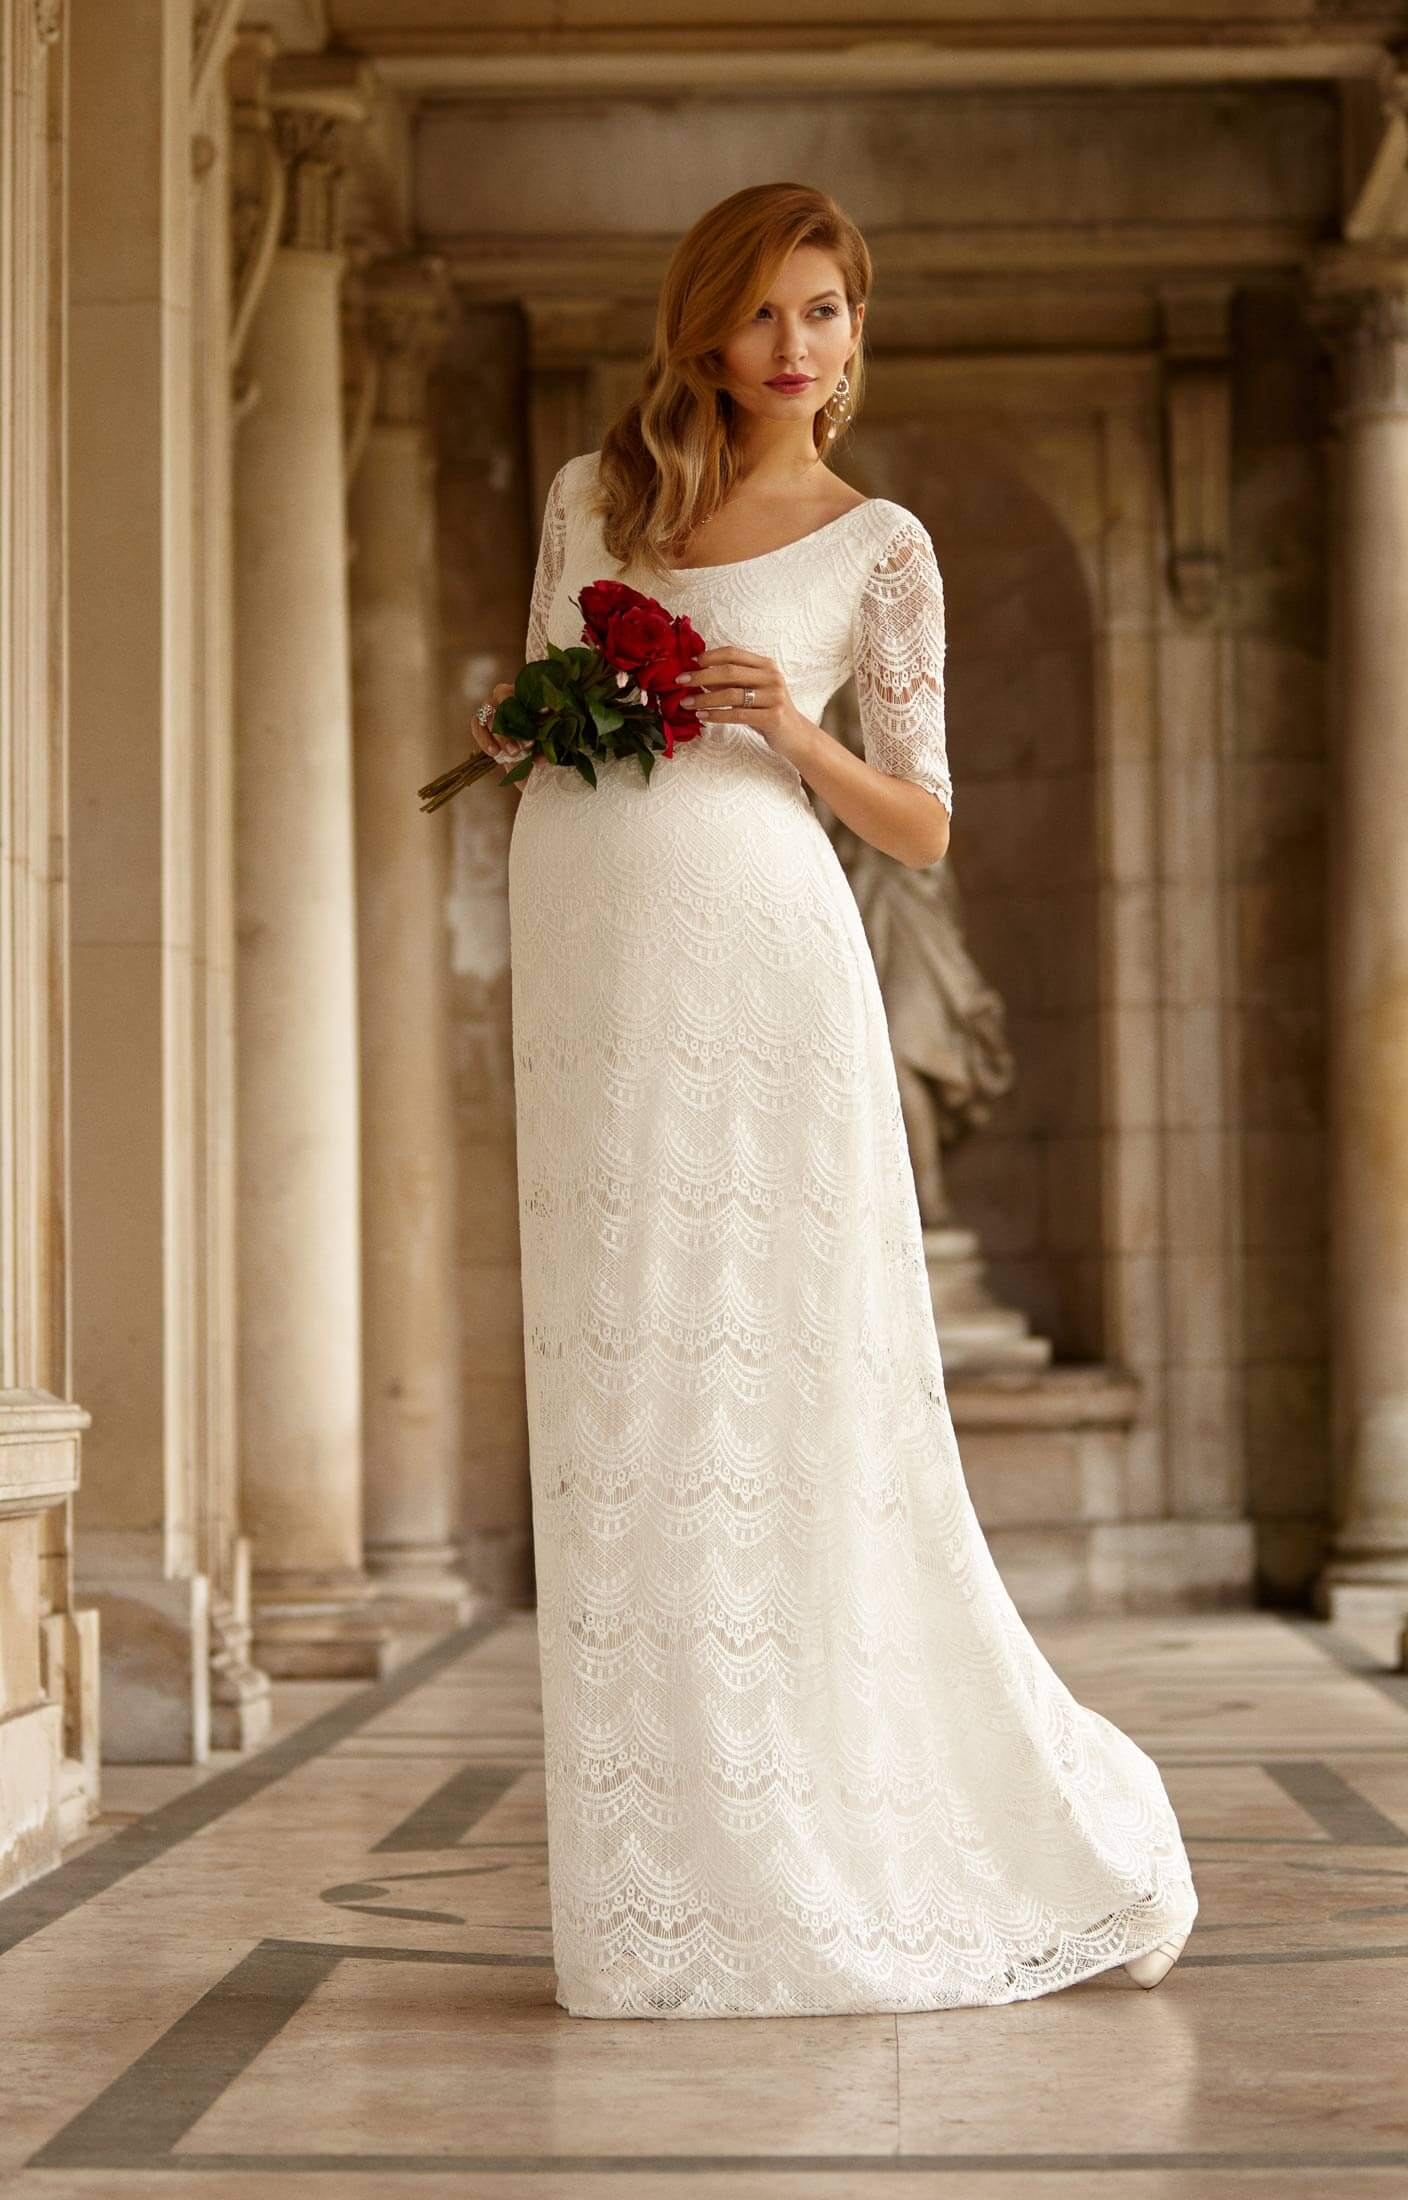 Maternity wedding dresses maternity wedding gowns and maternity verona maternity wedding gown ivory ombrellifo Gallery